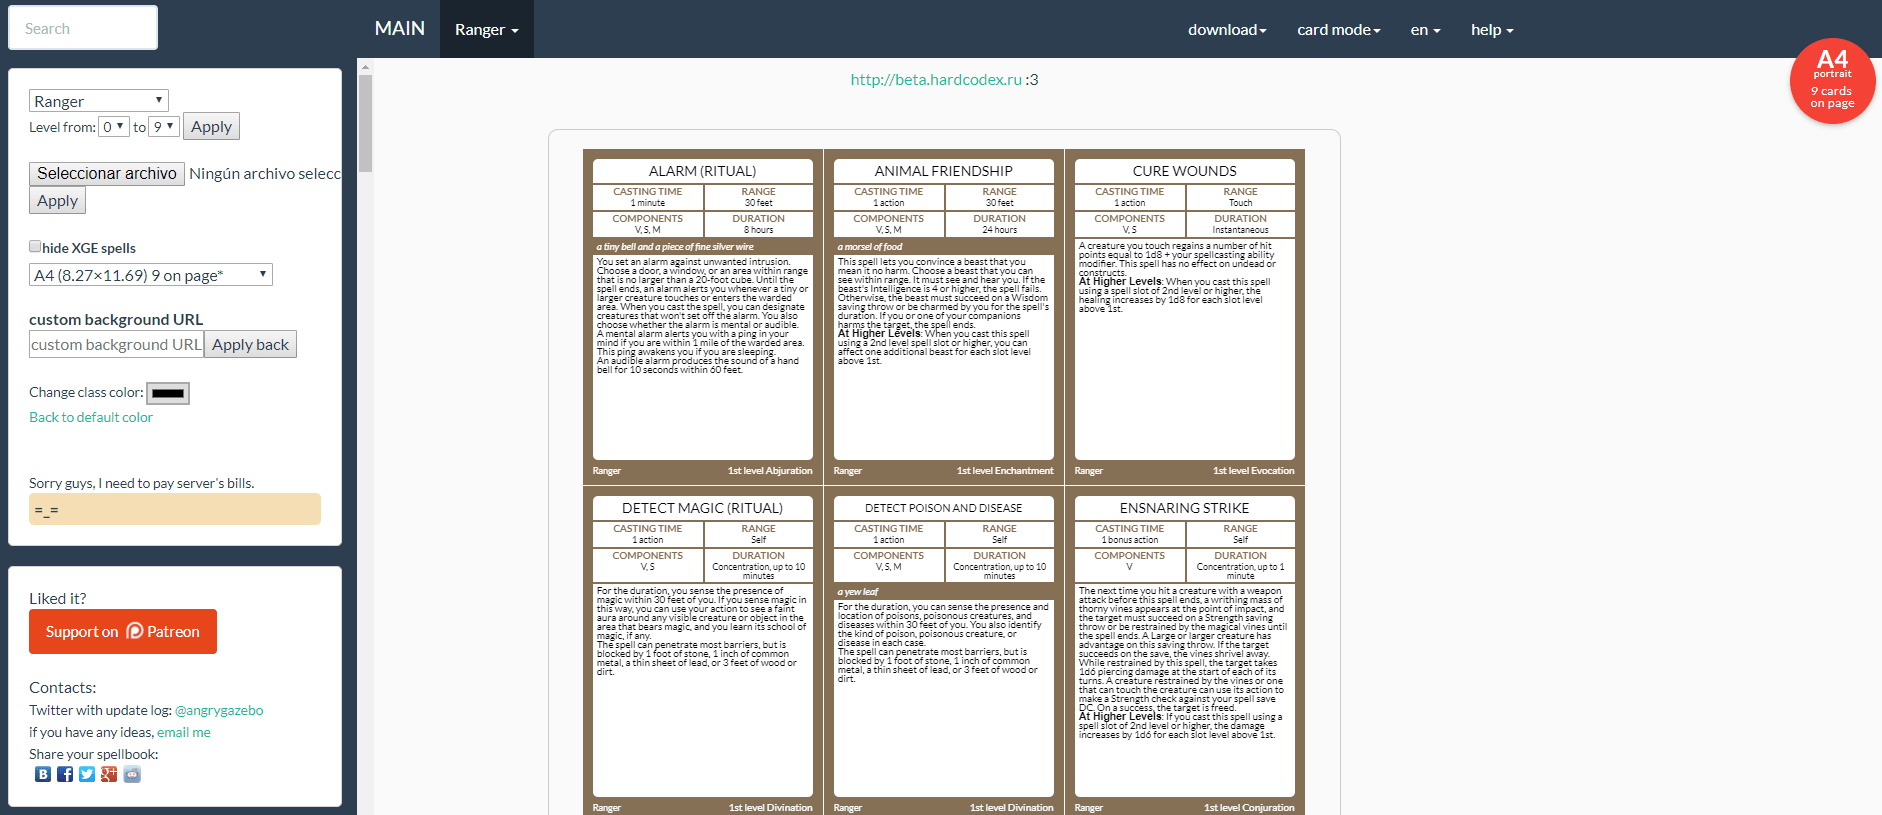 image about 5e Spell Cards Printable named Dnd 5e Spell Card Template - Investigating Mars